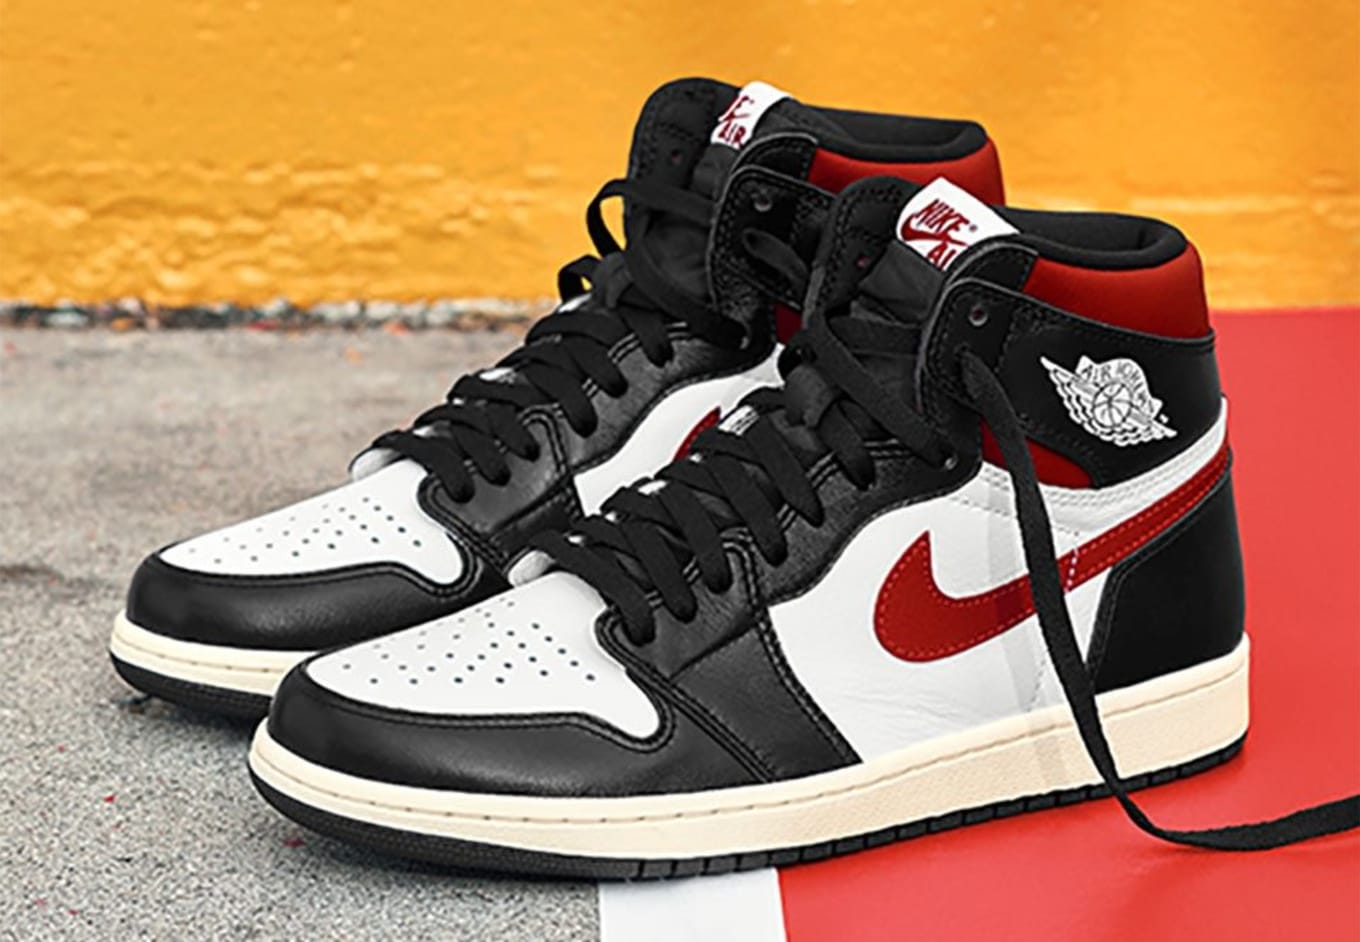 Air Jordan 1 Retro High OG 555088-061 Release Date Jun. 6 ...